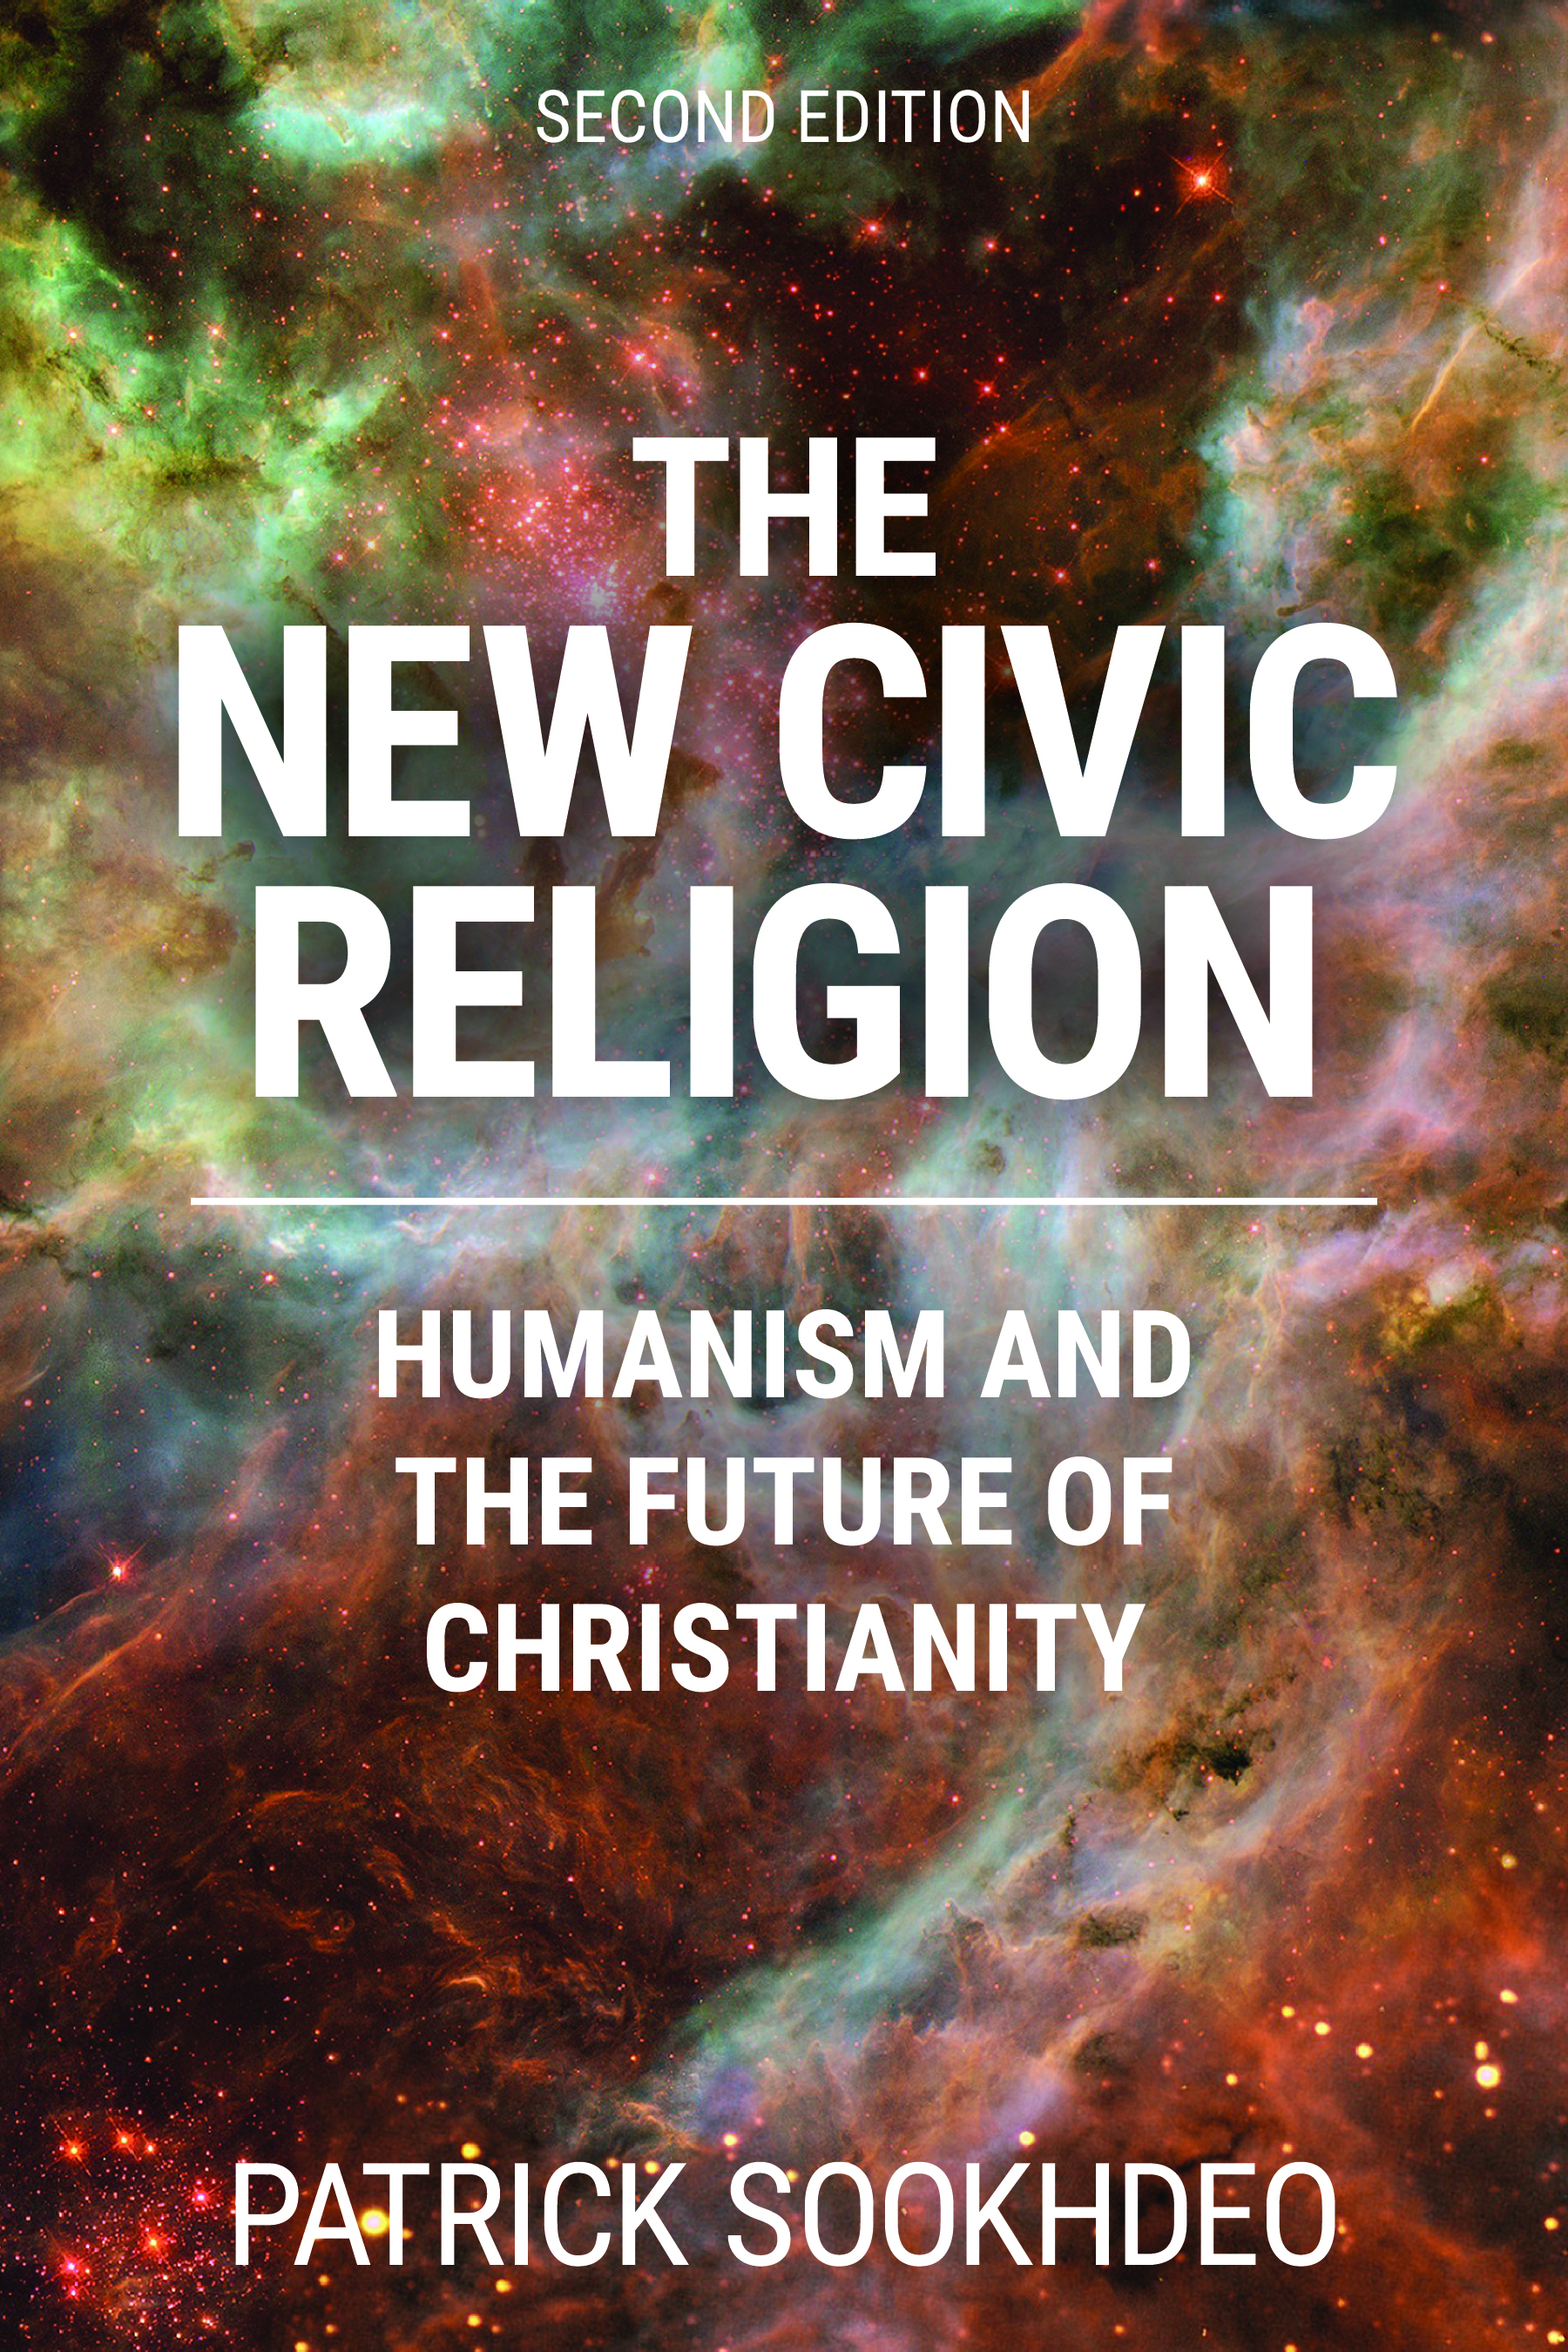 The New Civic Religion